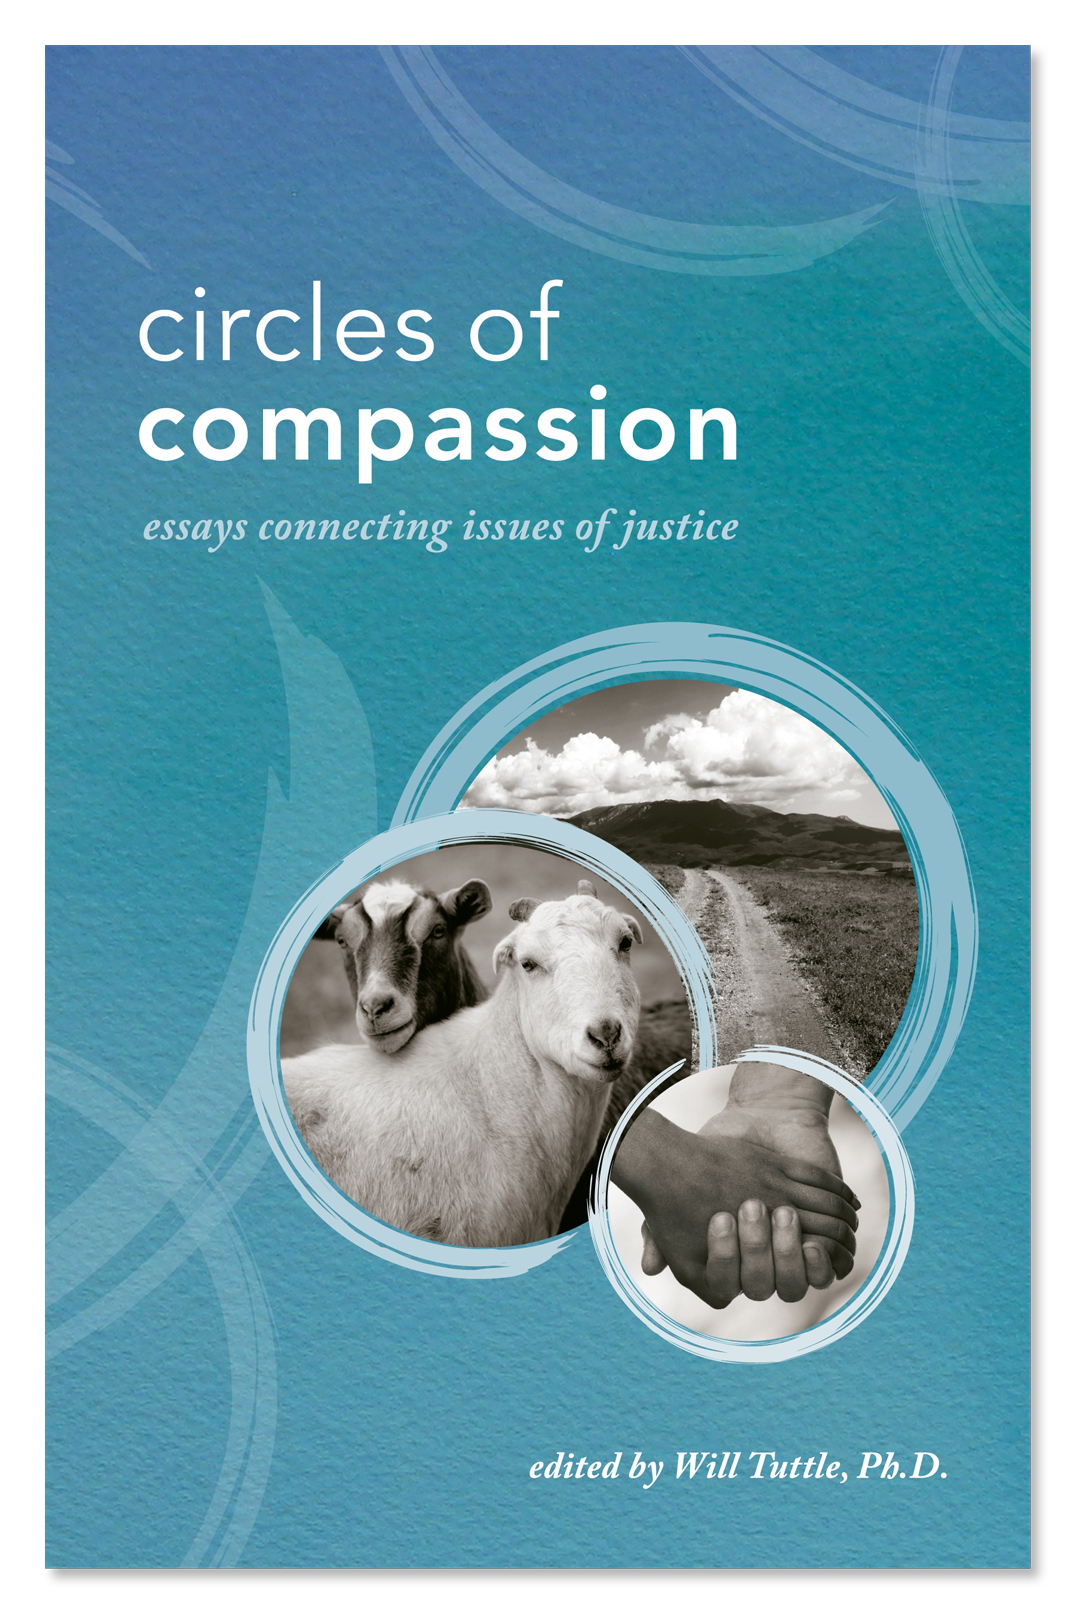 on compassion essay reviews